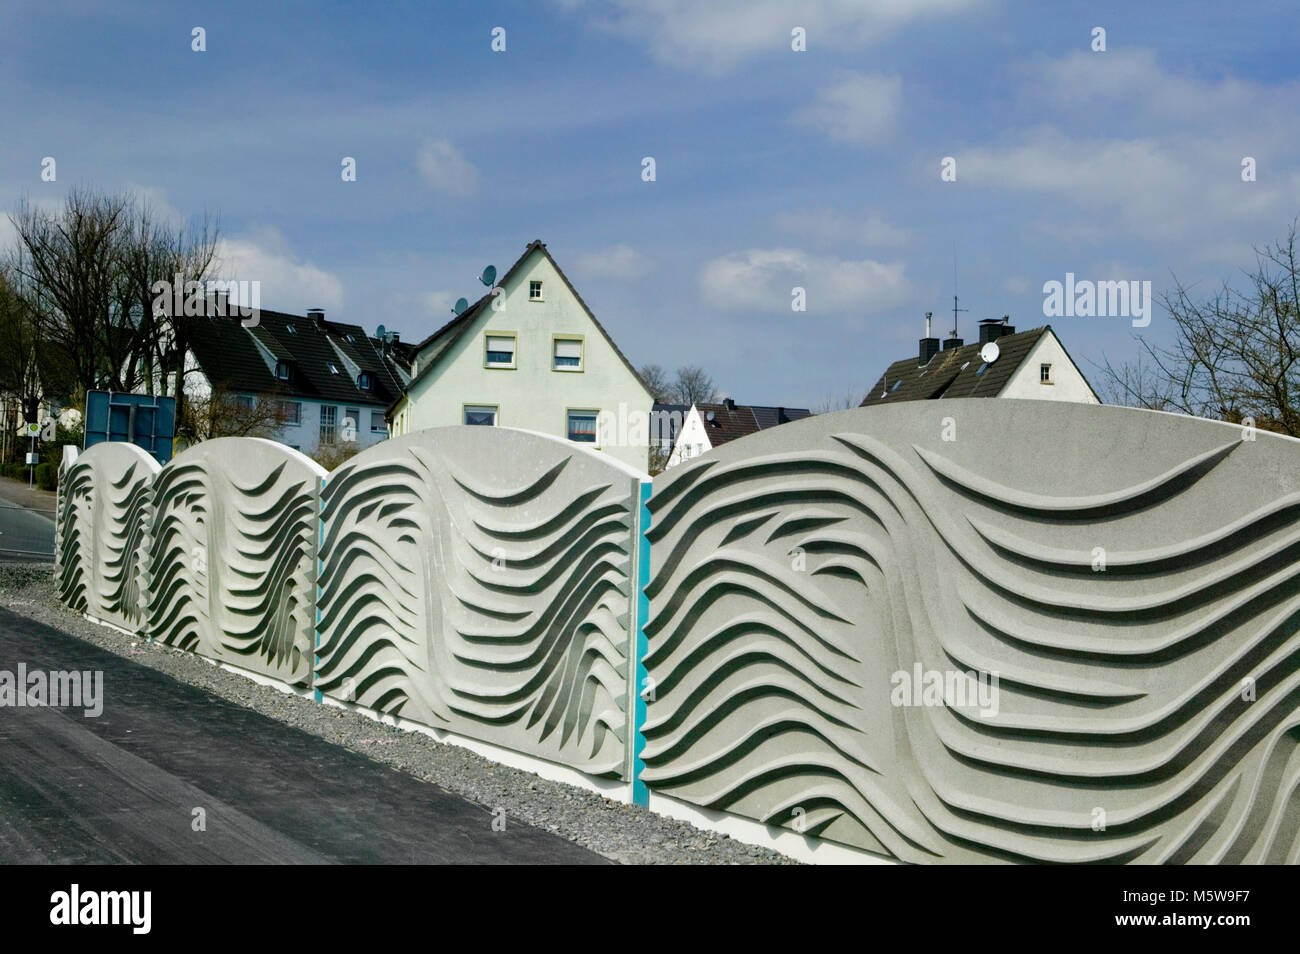 A noise barrier at Meinerzhagen, North Rhine-Westphalia, Germany, Europe - Stock Image